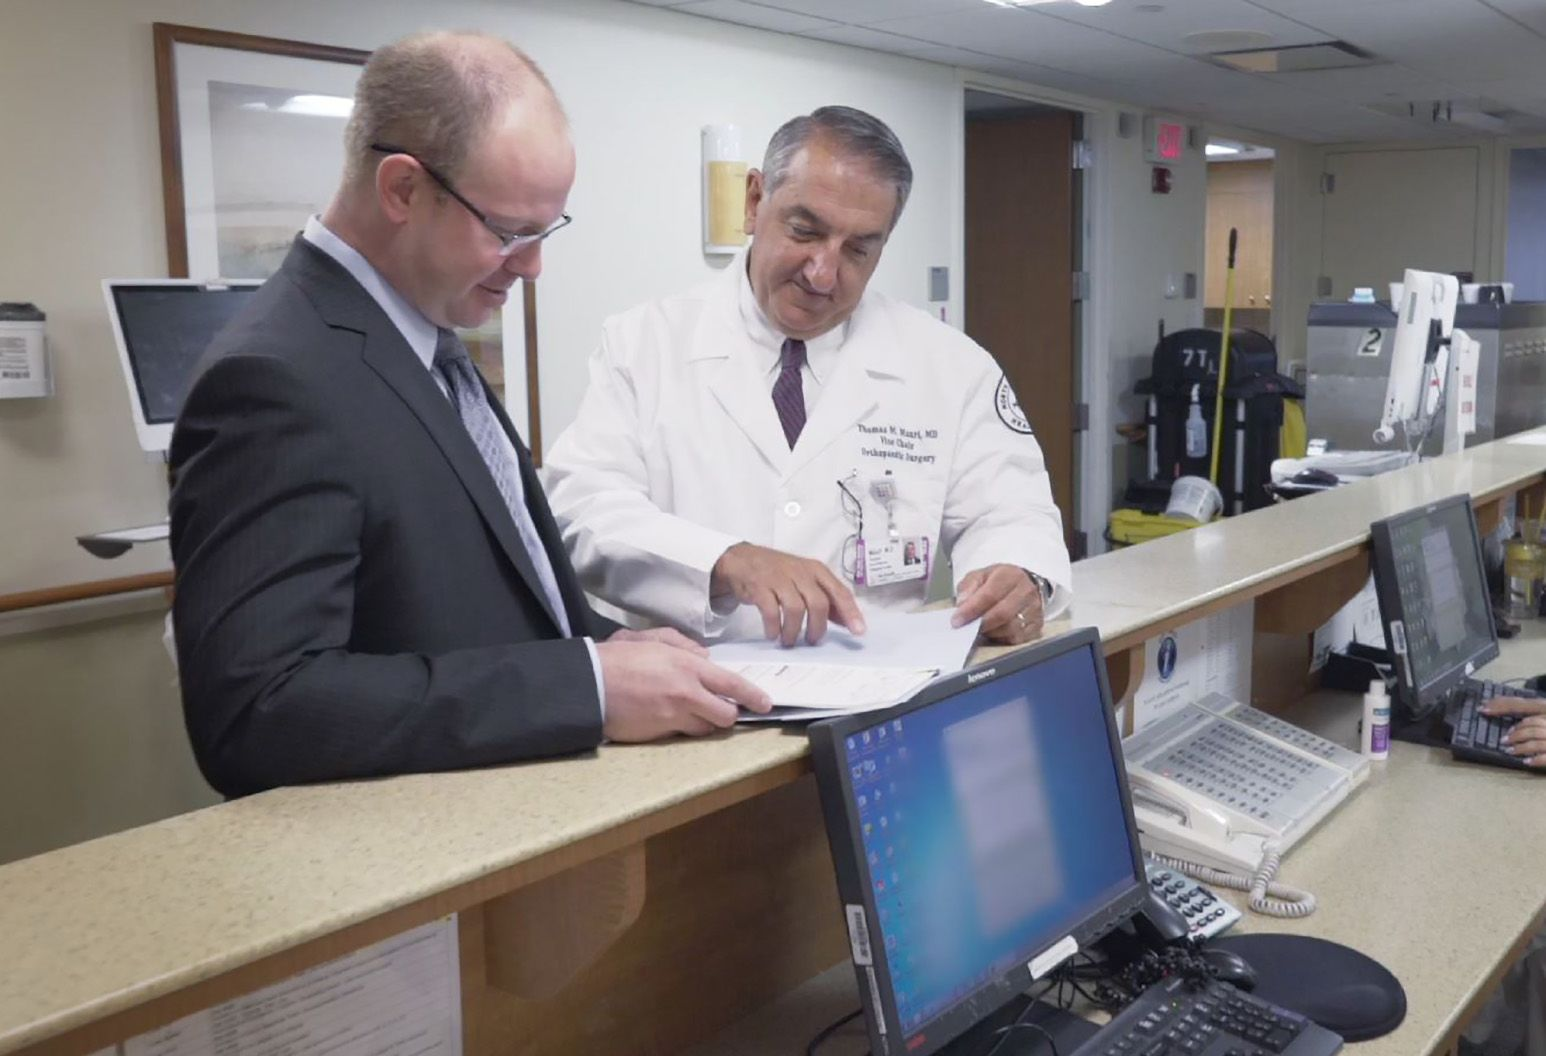 A doctor wearing a white coat and a staff member wearing a suit stand at the front desk of a doctor's office and look at a patient chart together.